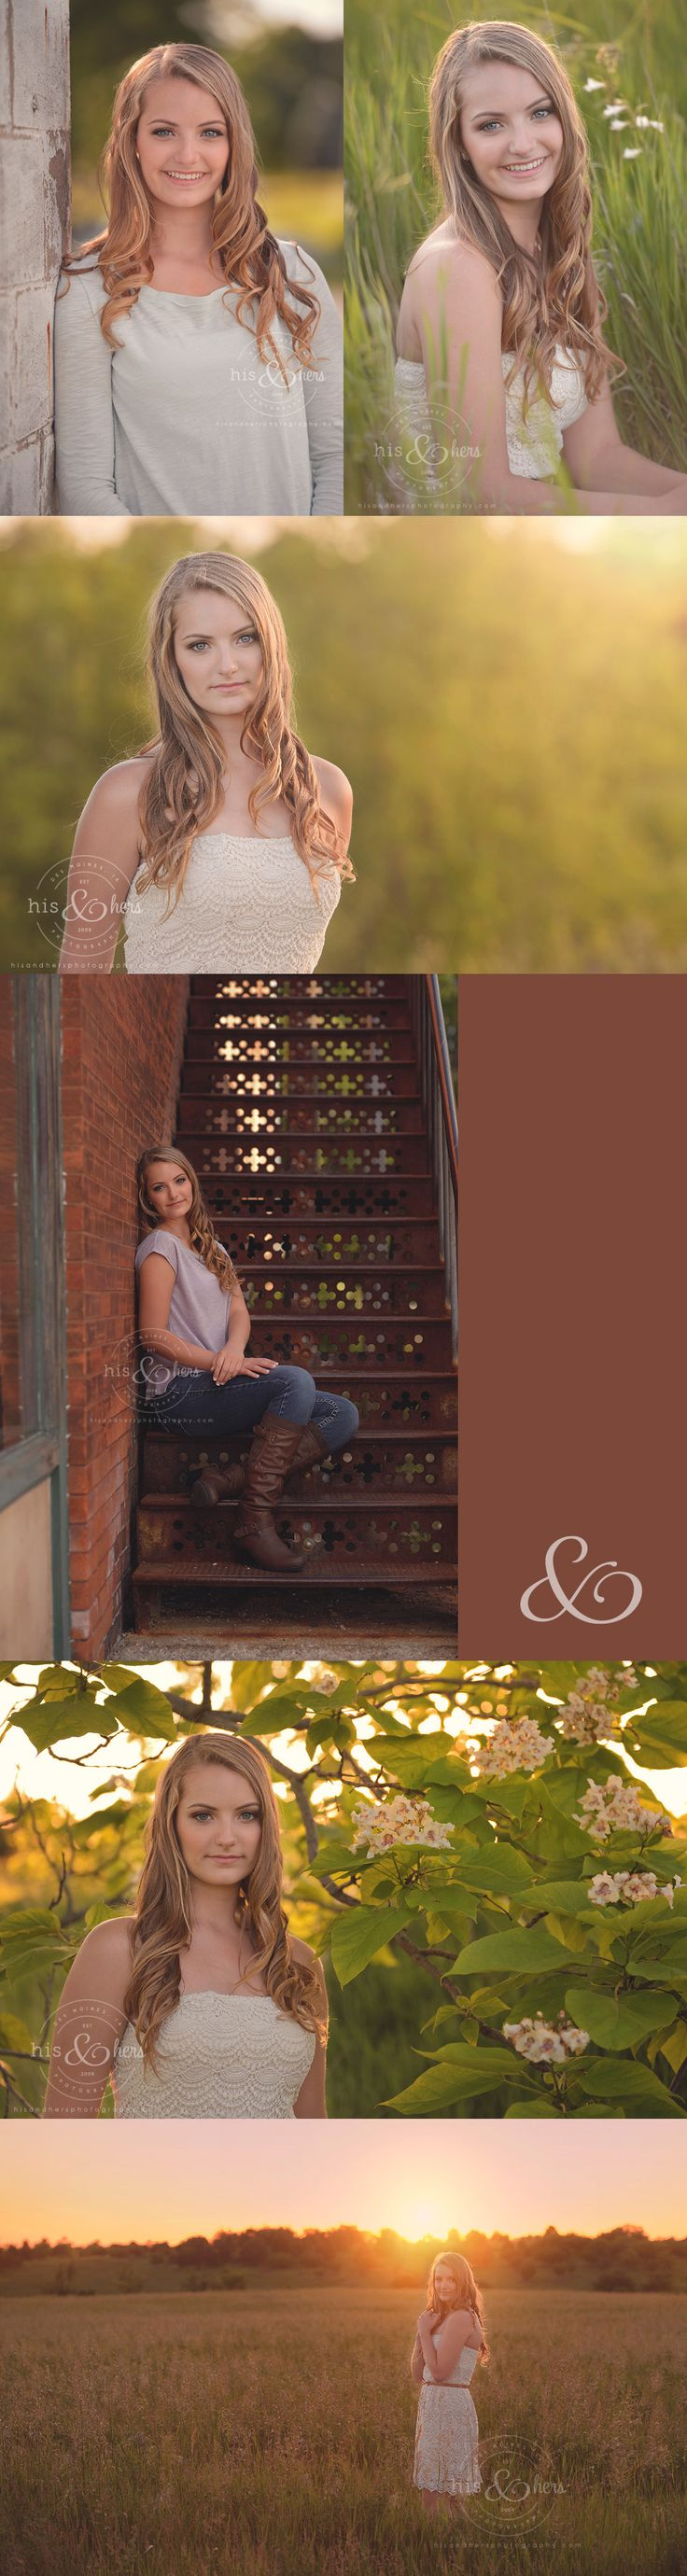 Senior | Brittany, Class of 2015